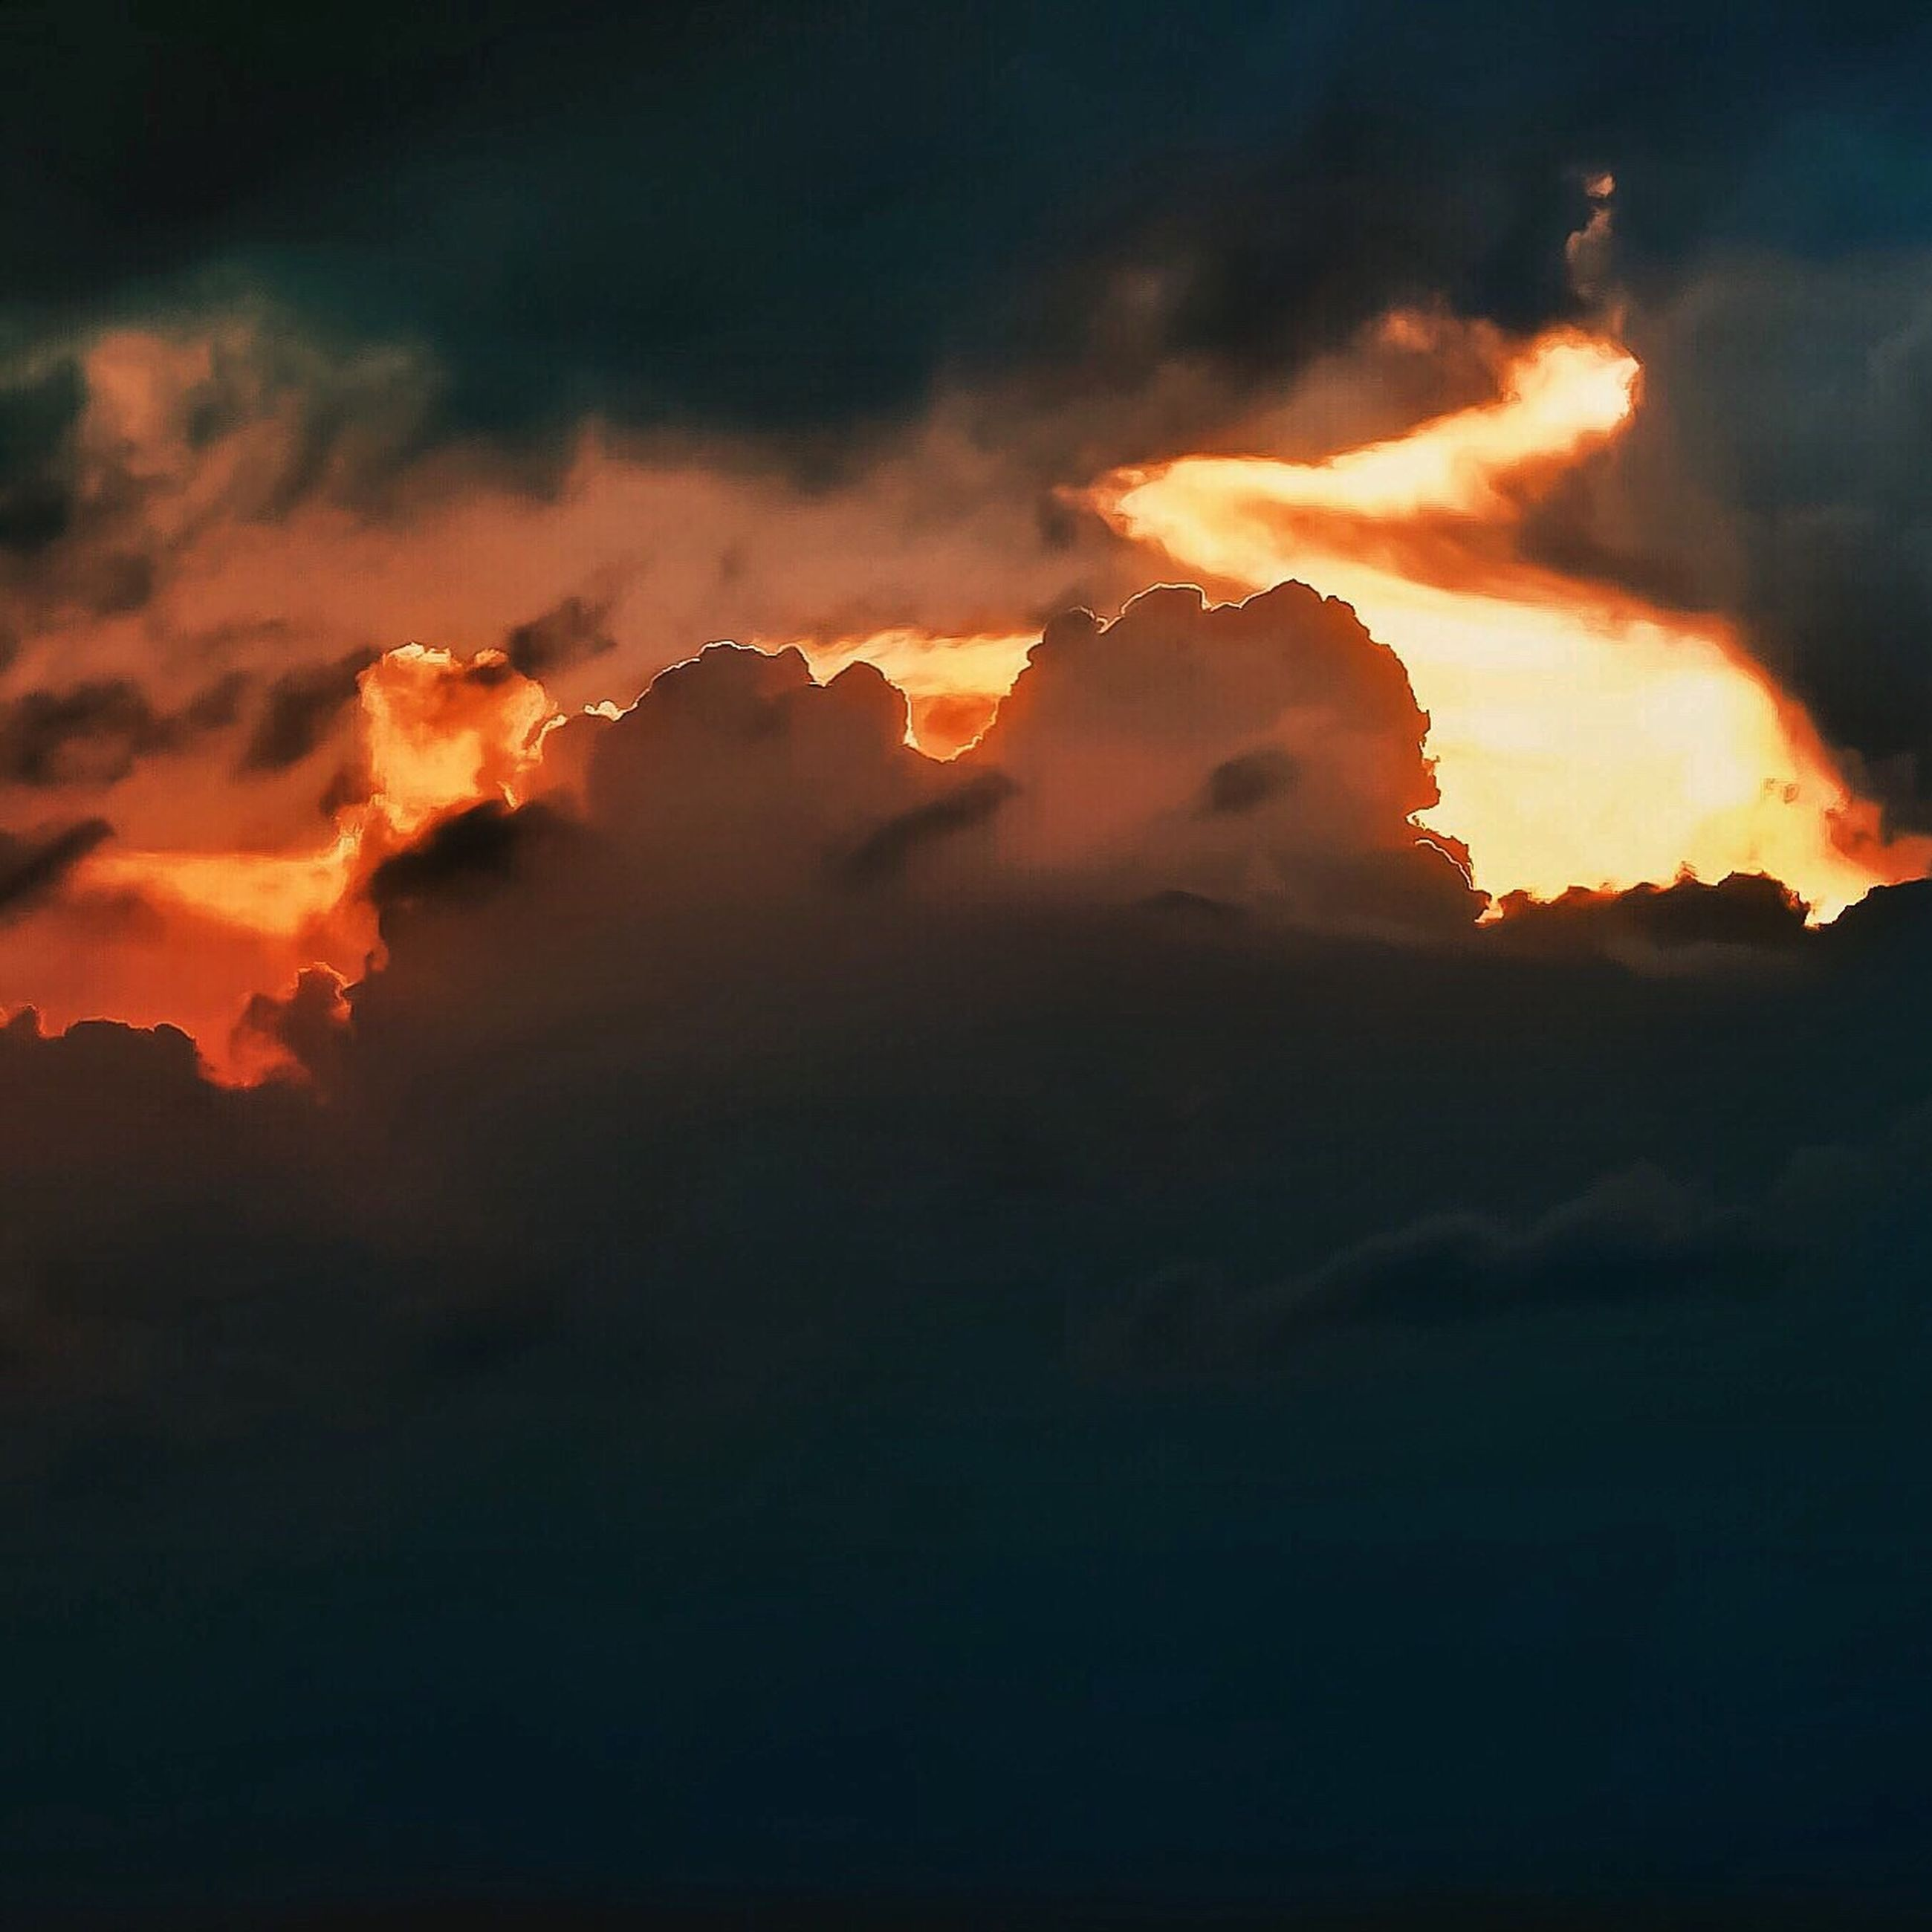 sunset, sky, orange color, scenics, cloud - sky, beauty in nature, dramatic sky, tranquil scene, tranquility, idyllic, nature, weather, cloudy, majestic, cloud, mountain, outdoors, cloudscape, overcast, no people, moody sky, landscape, non-urban scene, dark, glowing, remote